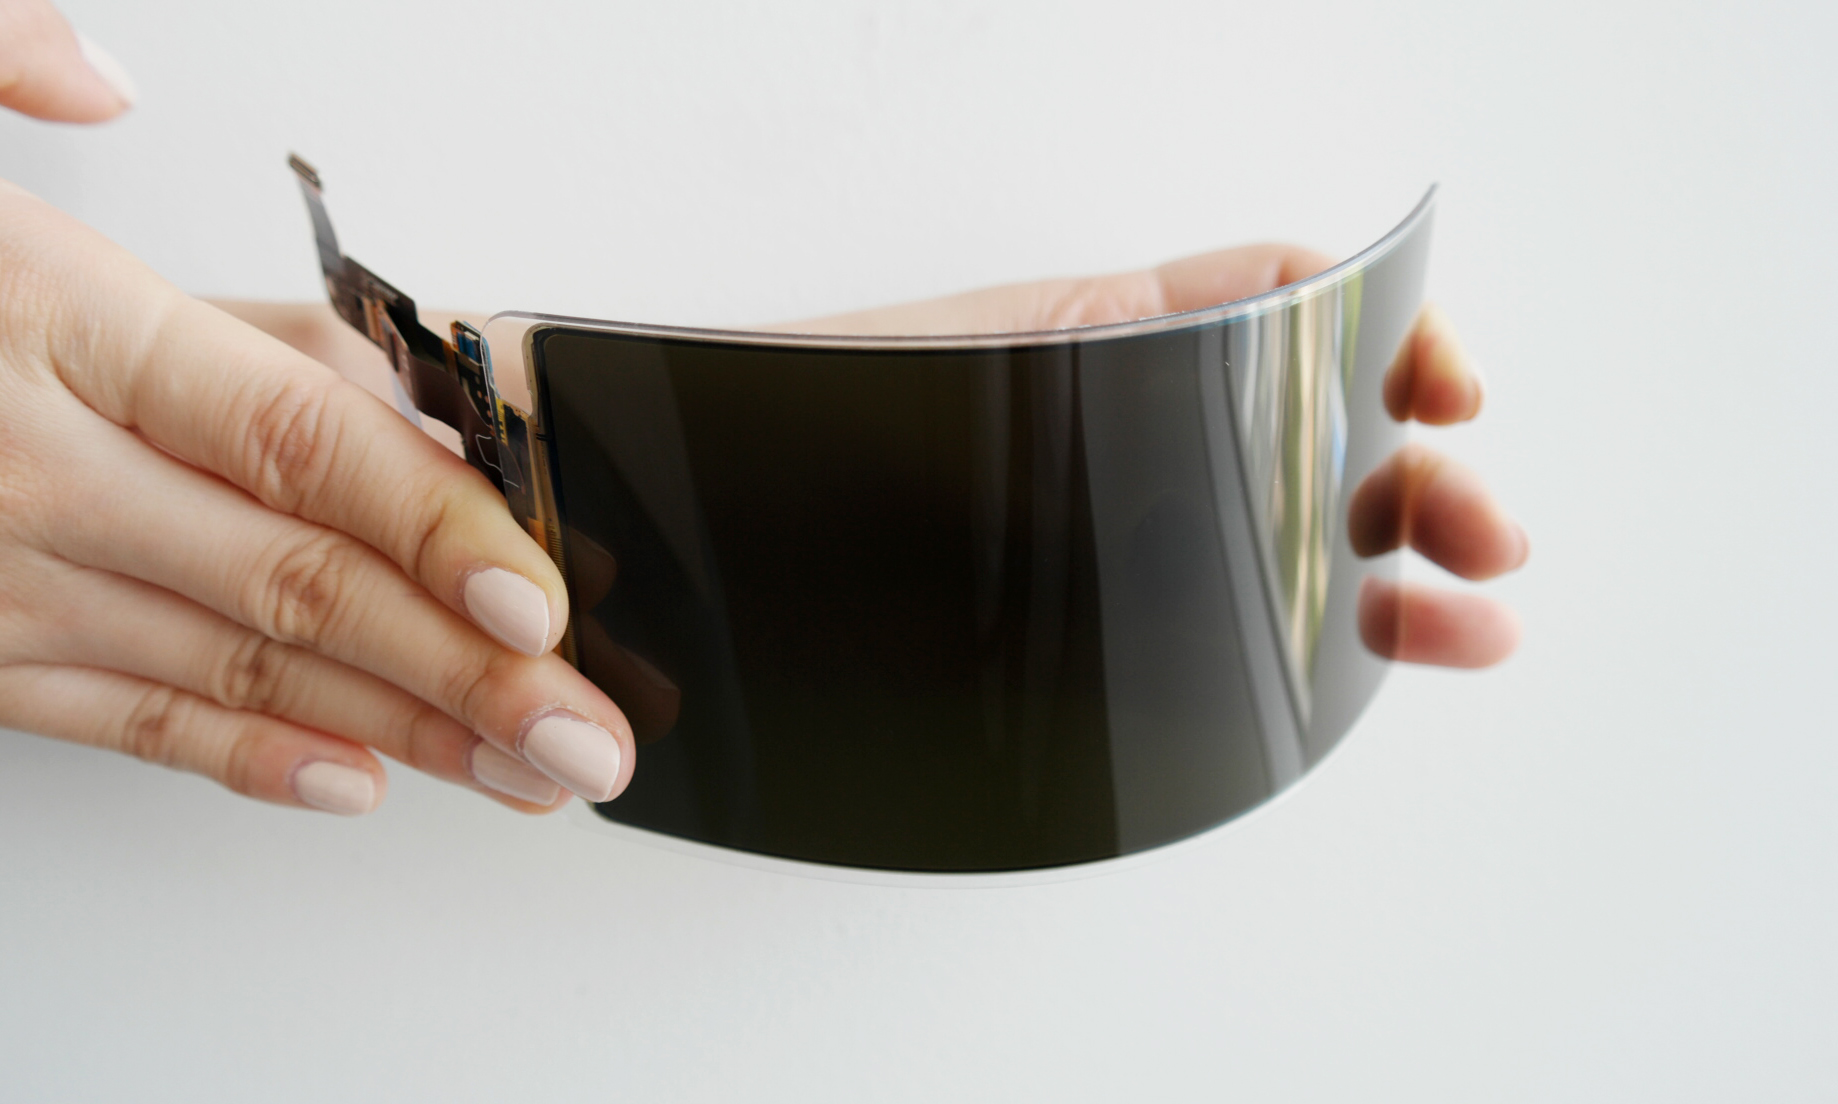 Samsung Display's 'Unbreakable Flexible Panel' Verified by UL ...